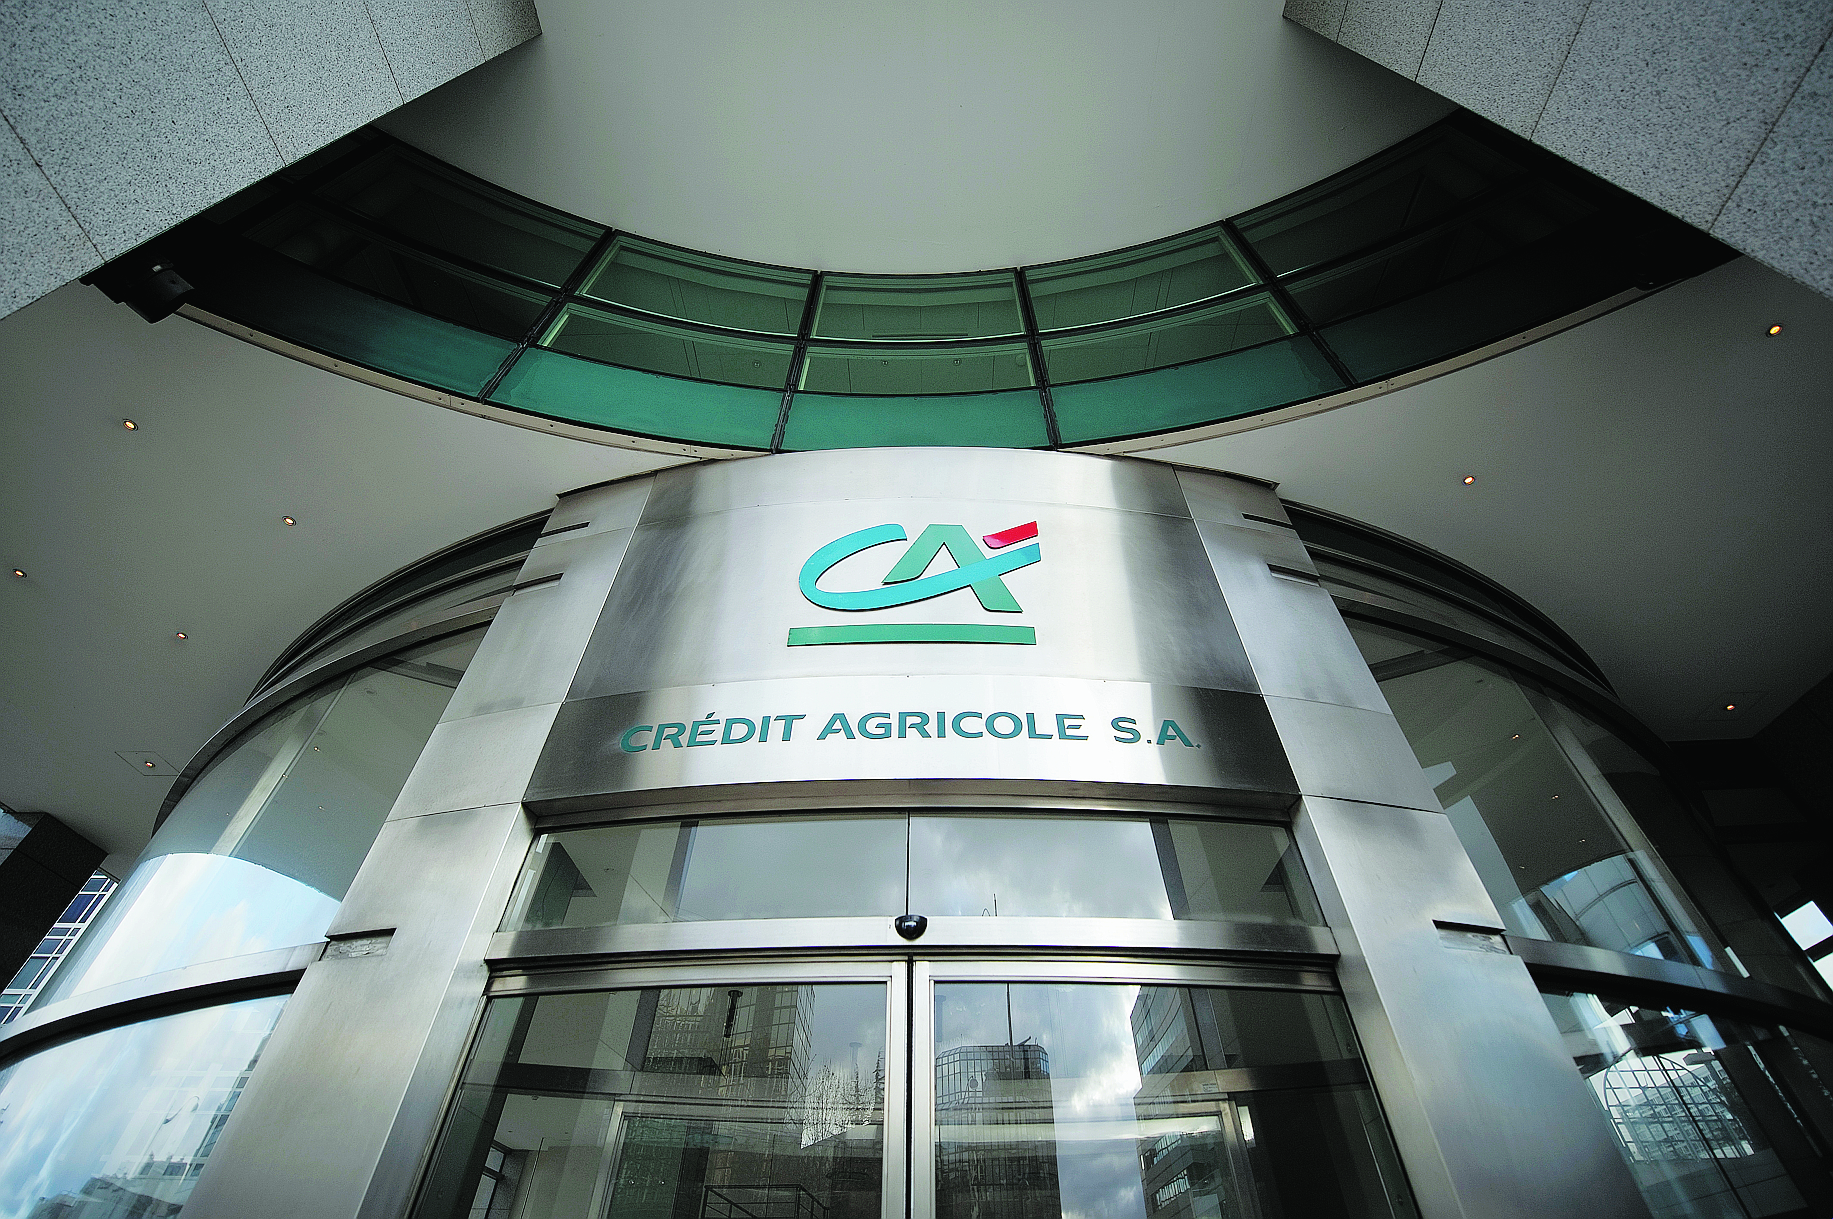 A picture taken on December 14, 2011 in Paris shows the entrance of former headquarters of the French bank Credit Agricole. French banking group Credit Agricole is to cut 2,350 jobs around the world, including 850 positions in France, mainly at its Cacib investment bank, the Force Ouvriere (FO) union said today. At Cacib, 1,750 jobs will be cut globally, including 550 in France, said FO's representative for the bank, Bernard Pechard. AFP PHOTO  / LIONEL BONAVENTURE